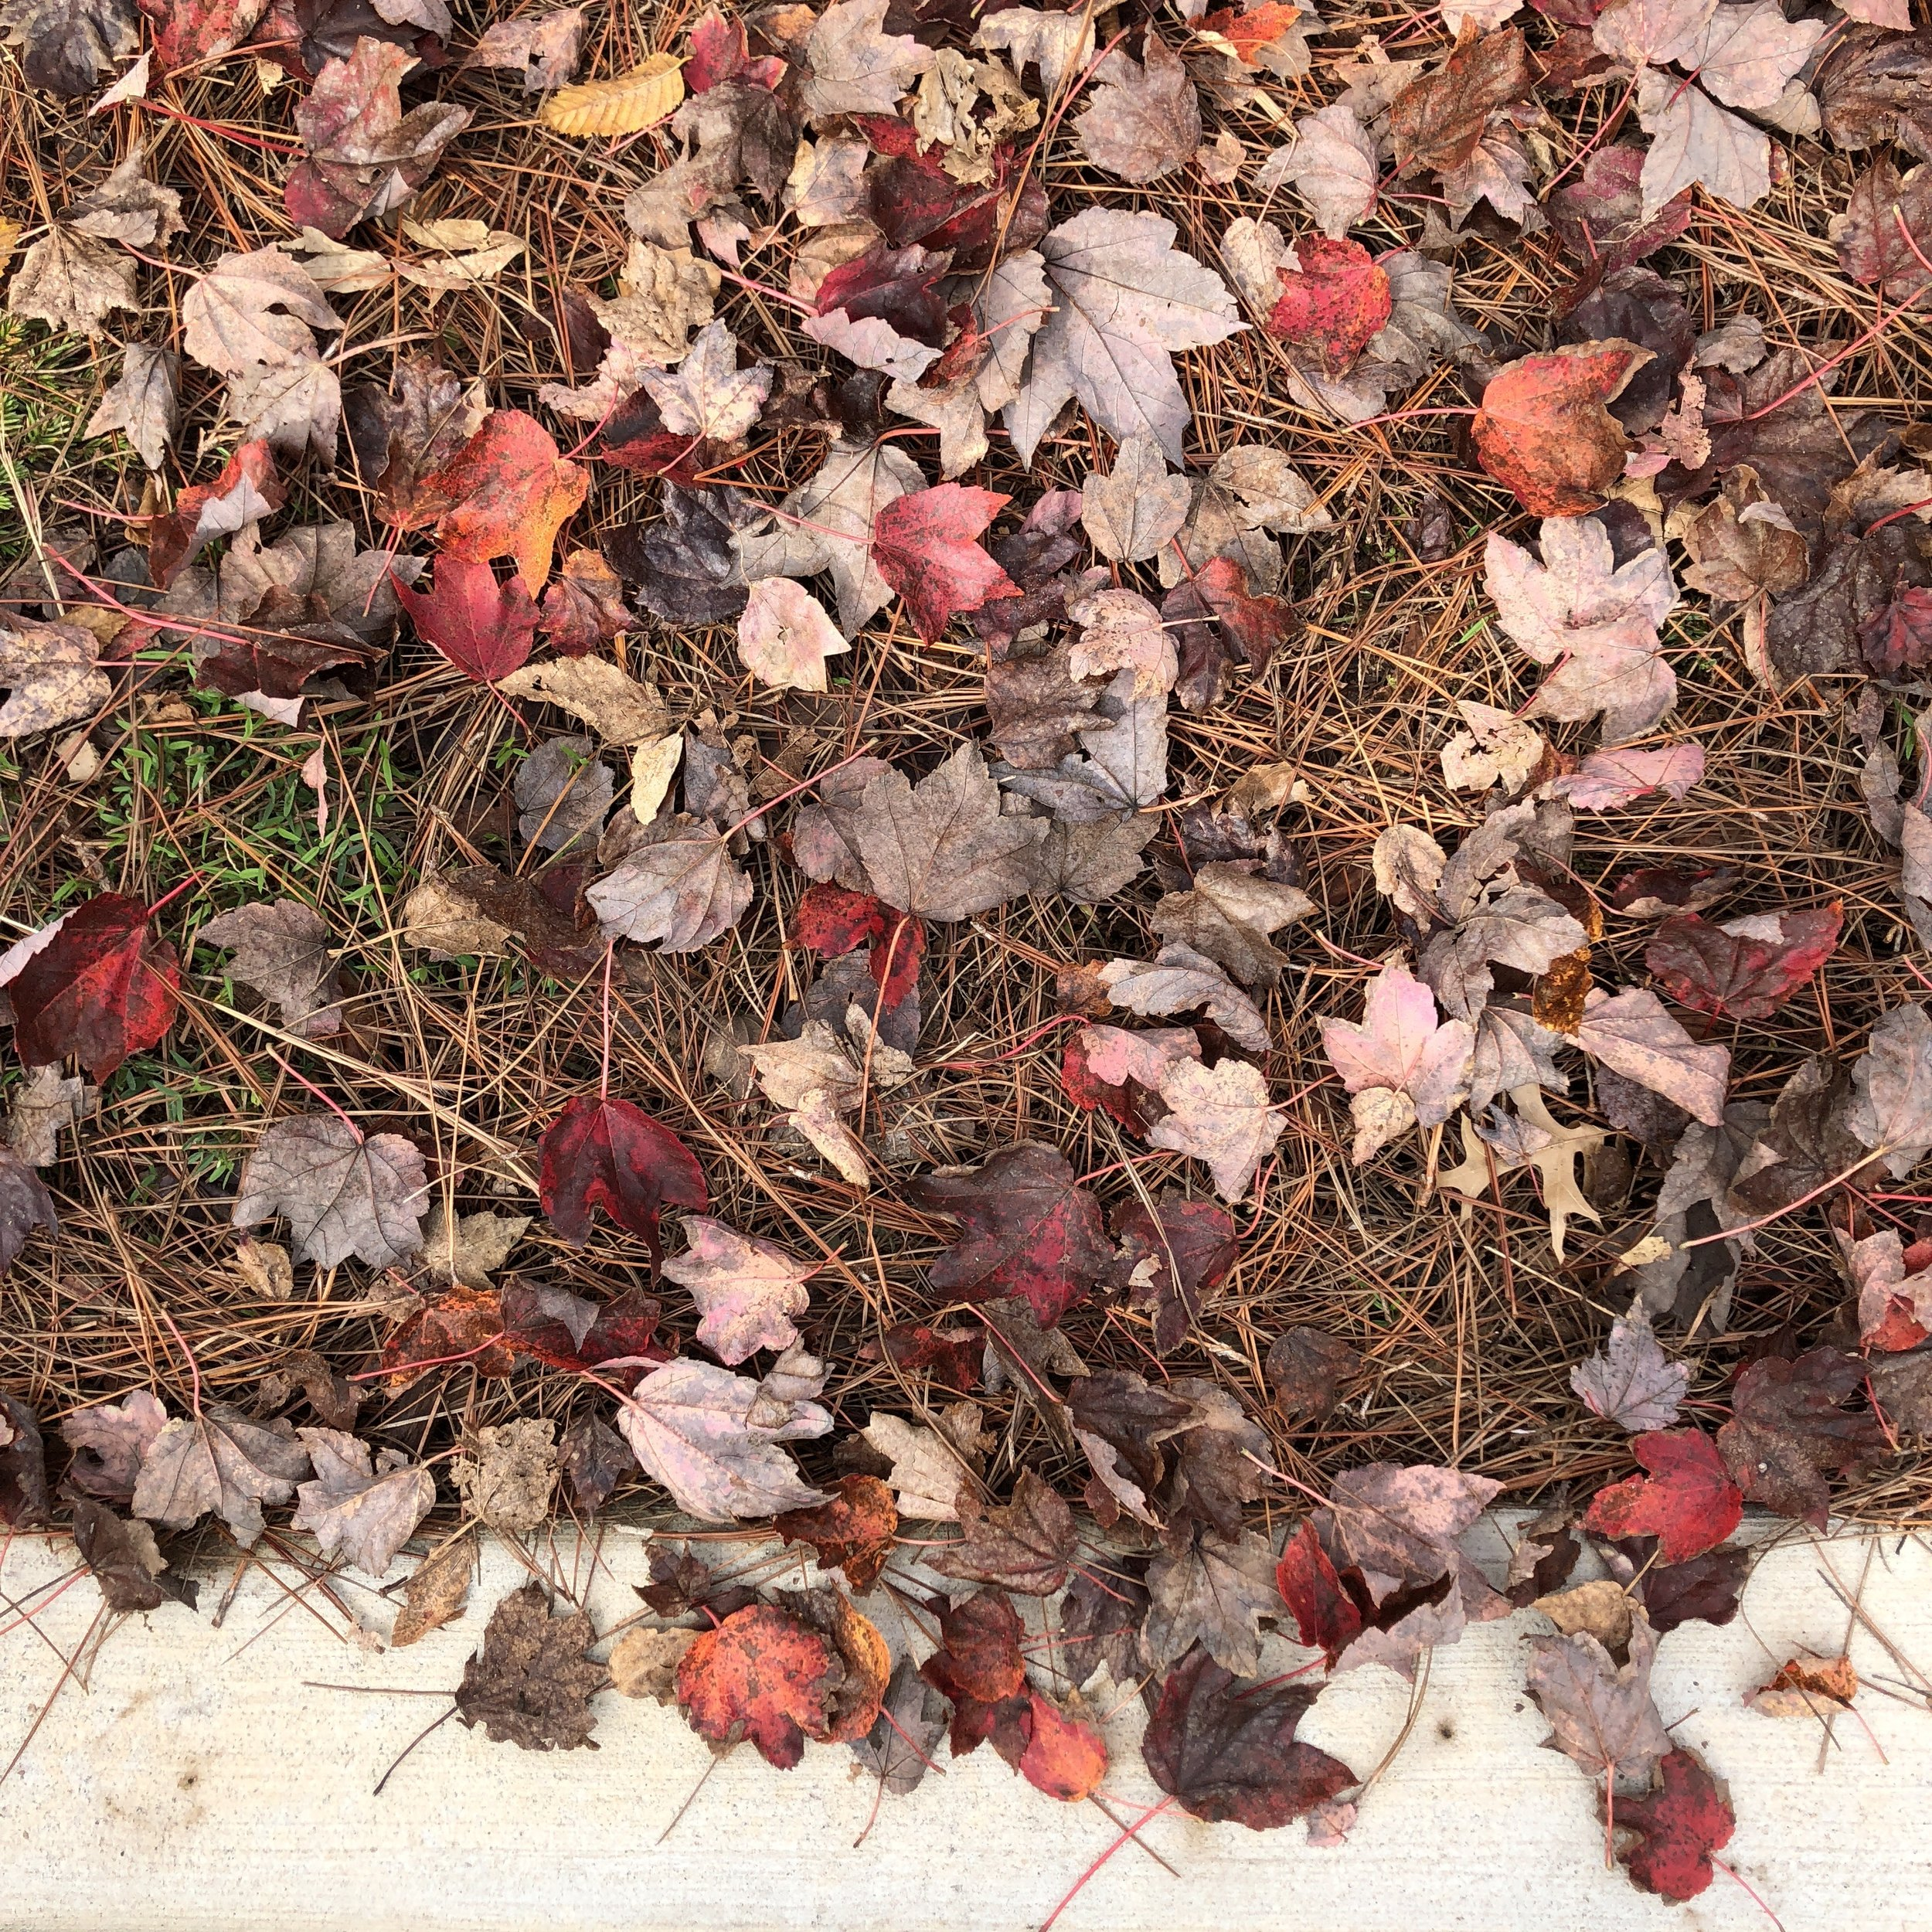 At the curb in front of a sandwich shop where I like to write. Red leaves make me stop every time.